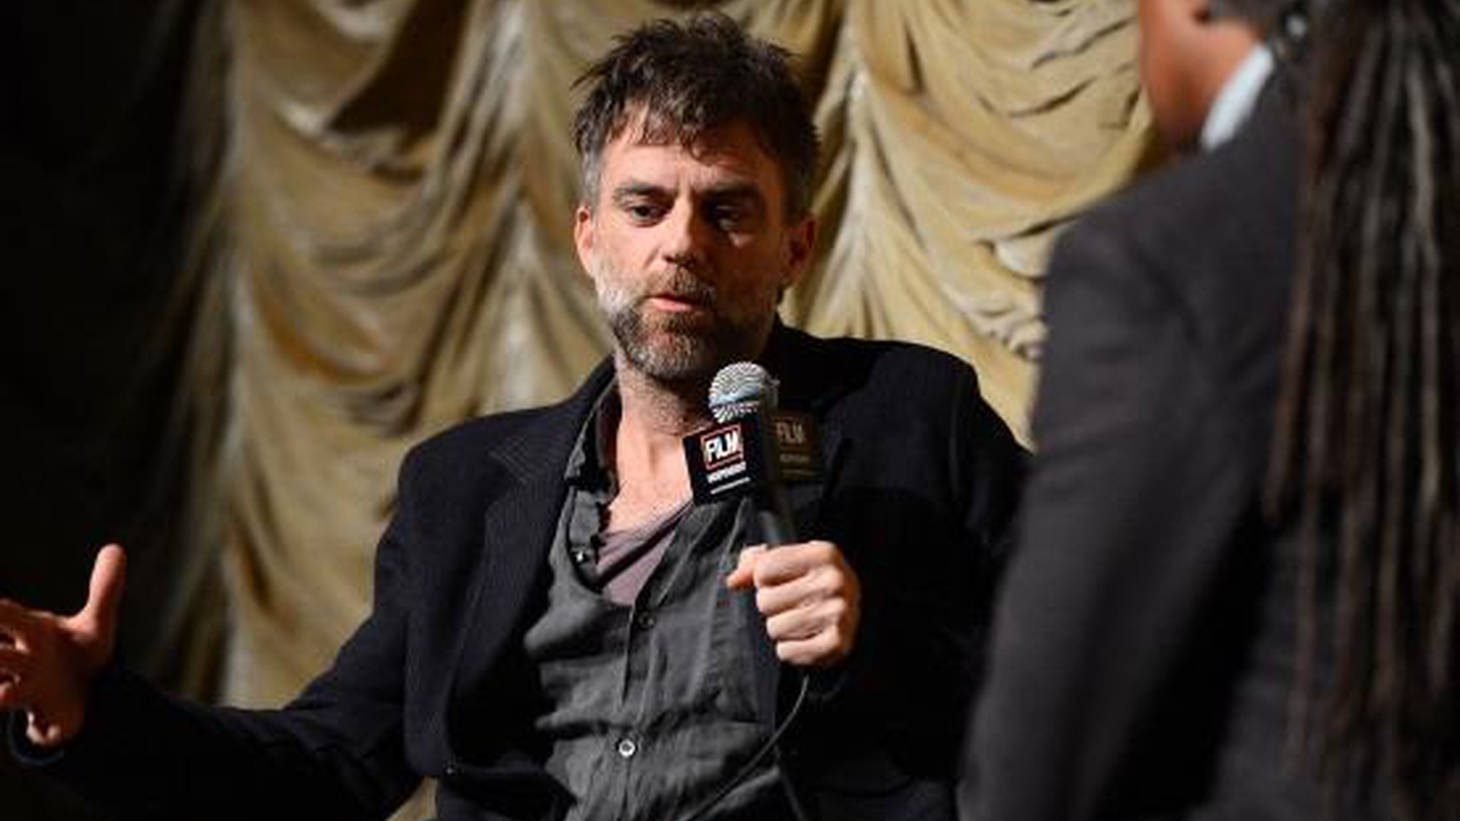 BONUS EPISODE: Elvis Mitchell in conversation with Paul Thomas Anderson, recorded live as part of the Film Independent at LACMA program.